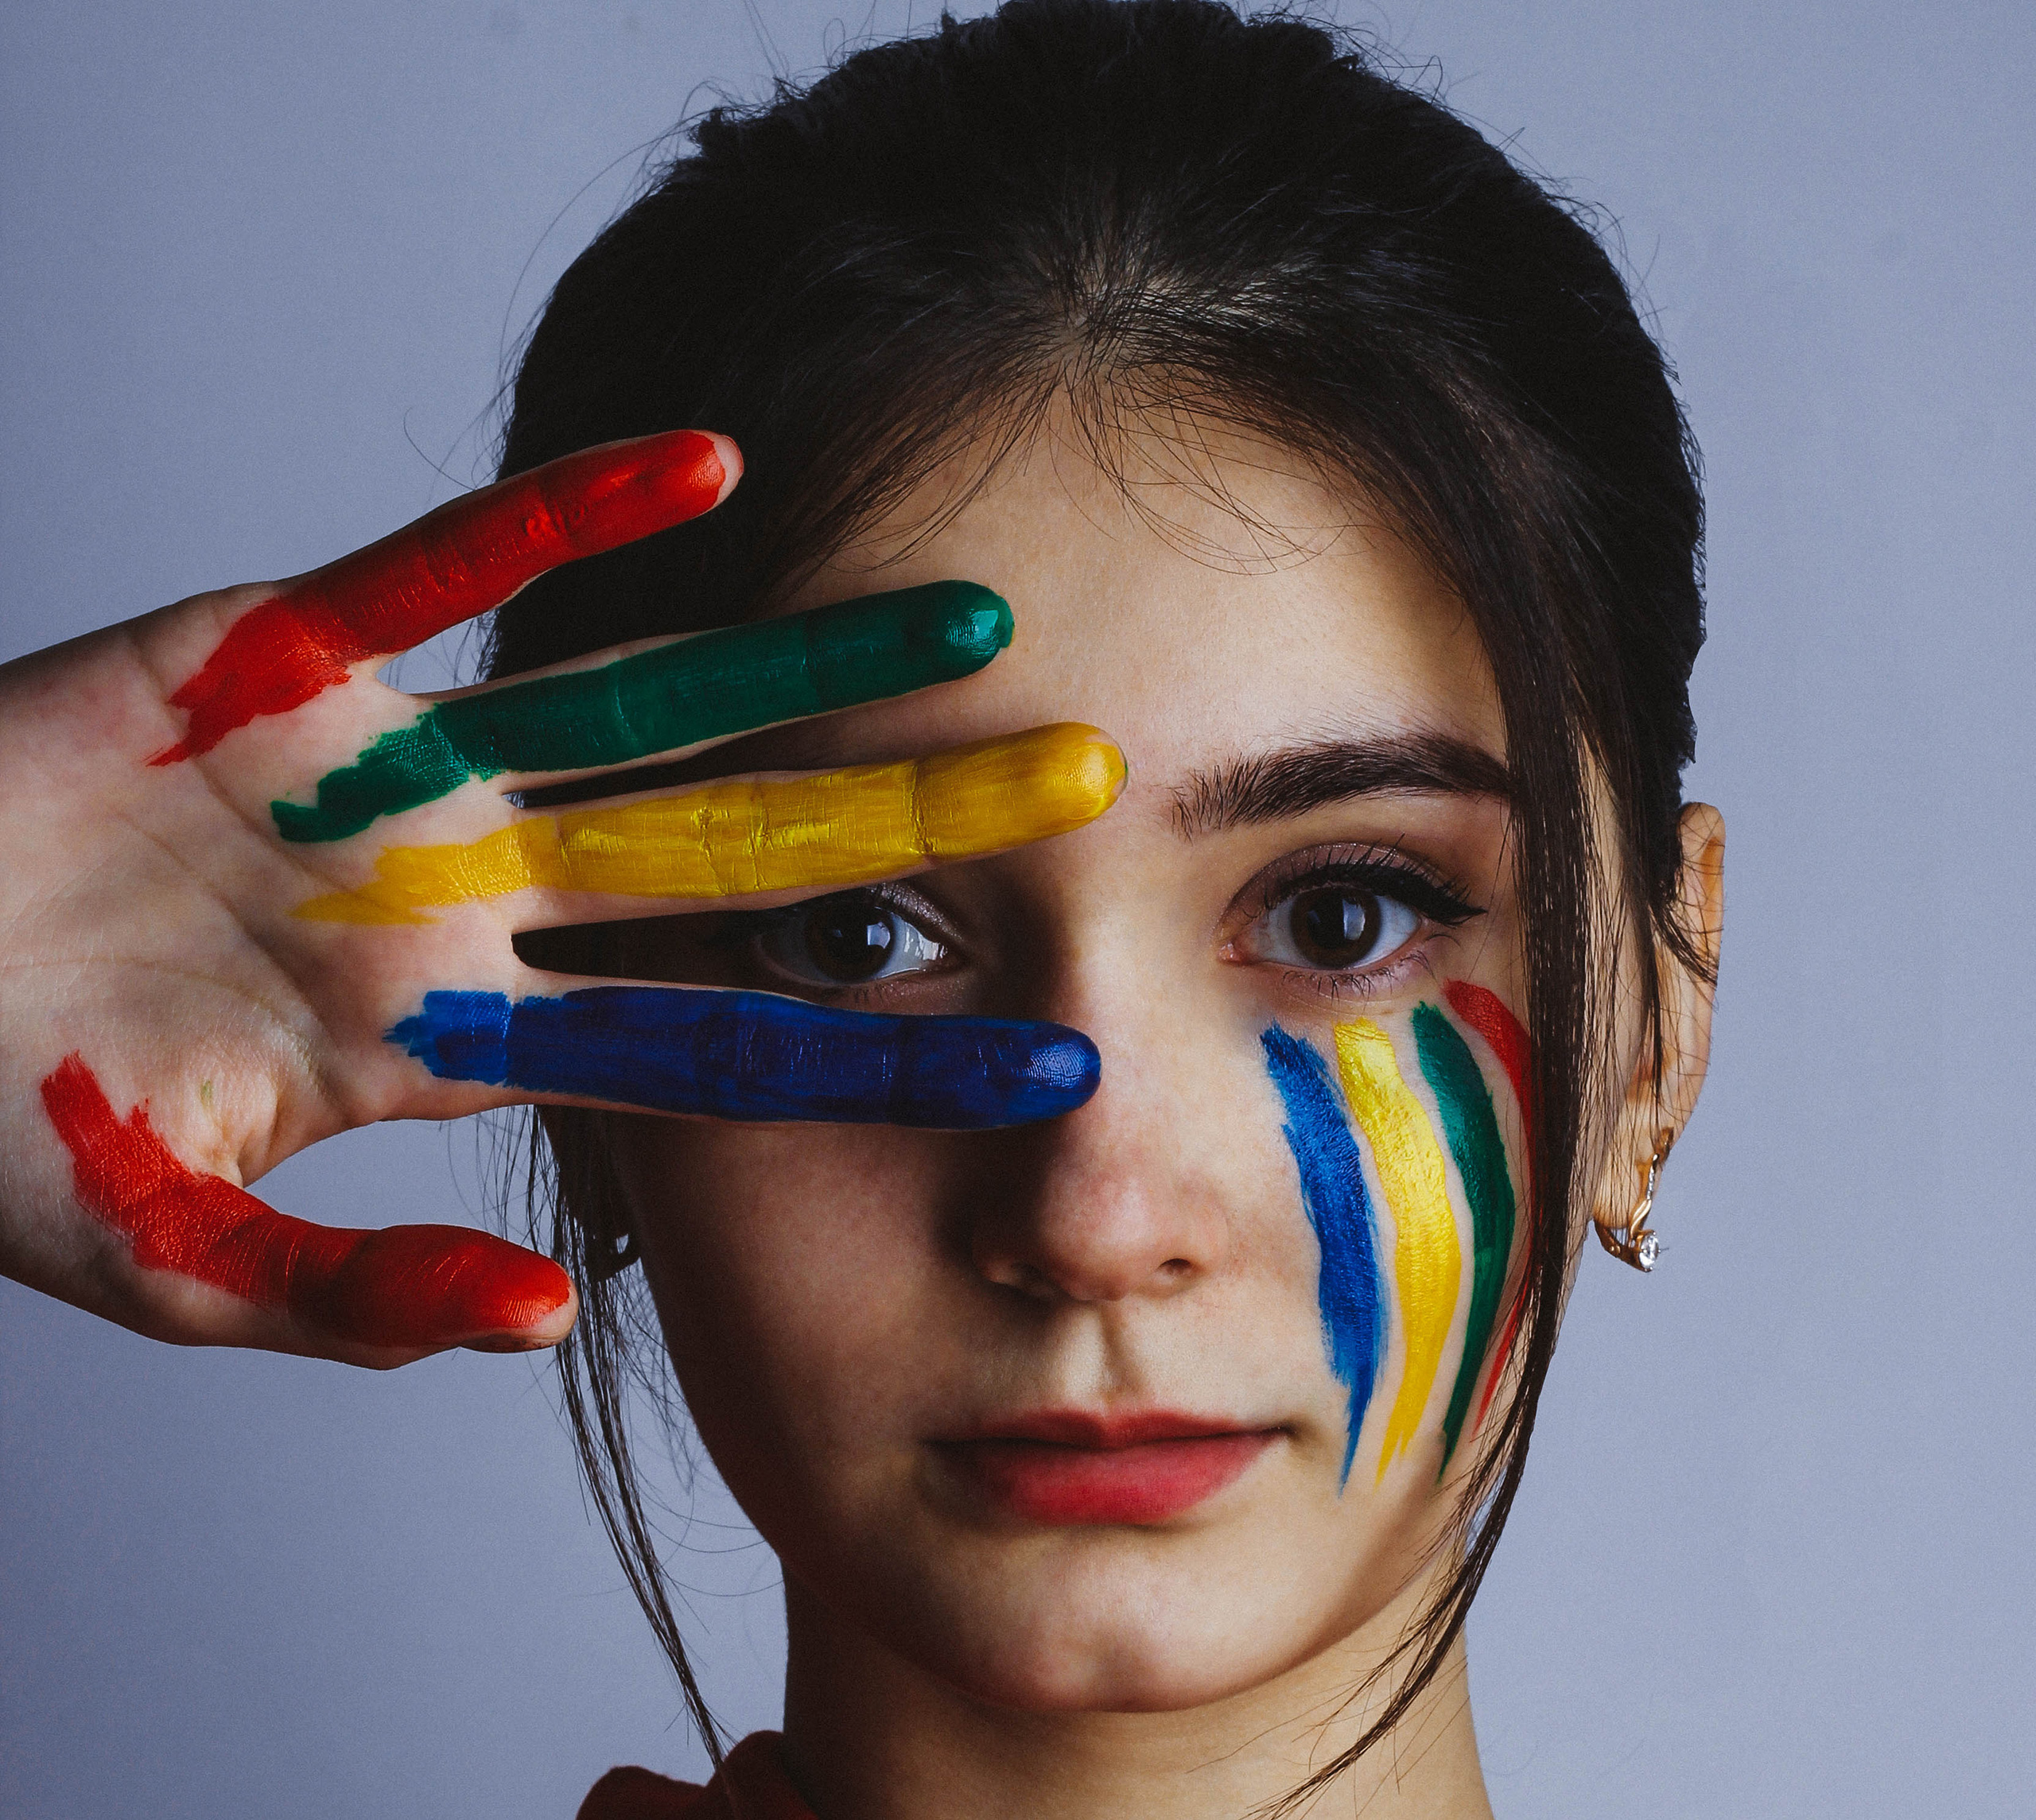 STEM or STEAM? Girls choose STEAM for creative and humanitarian purposes